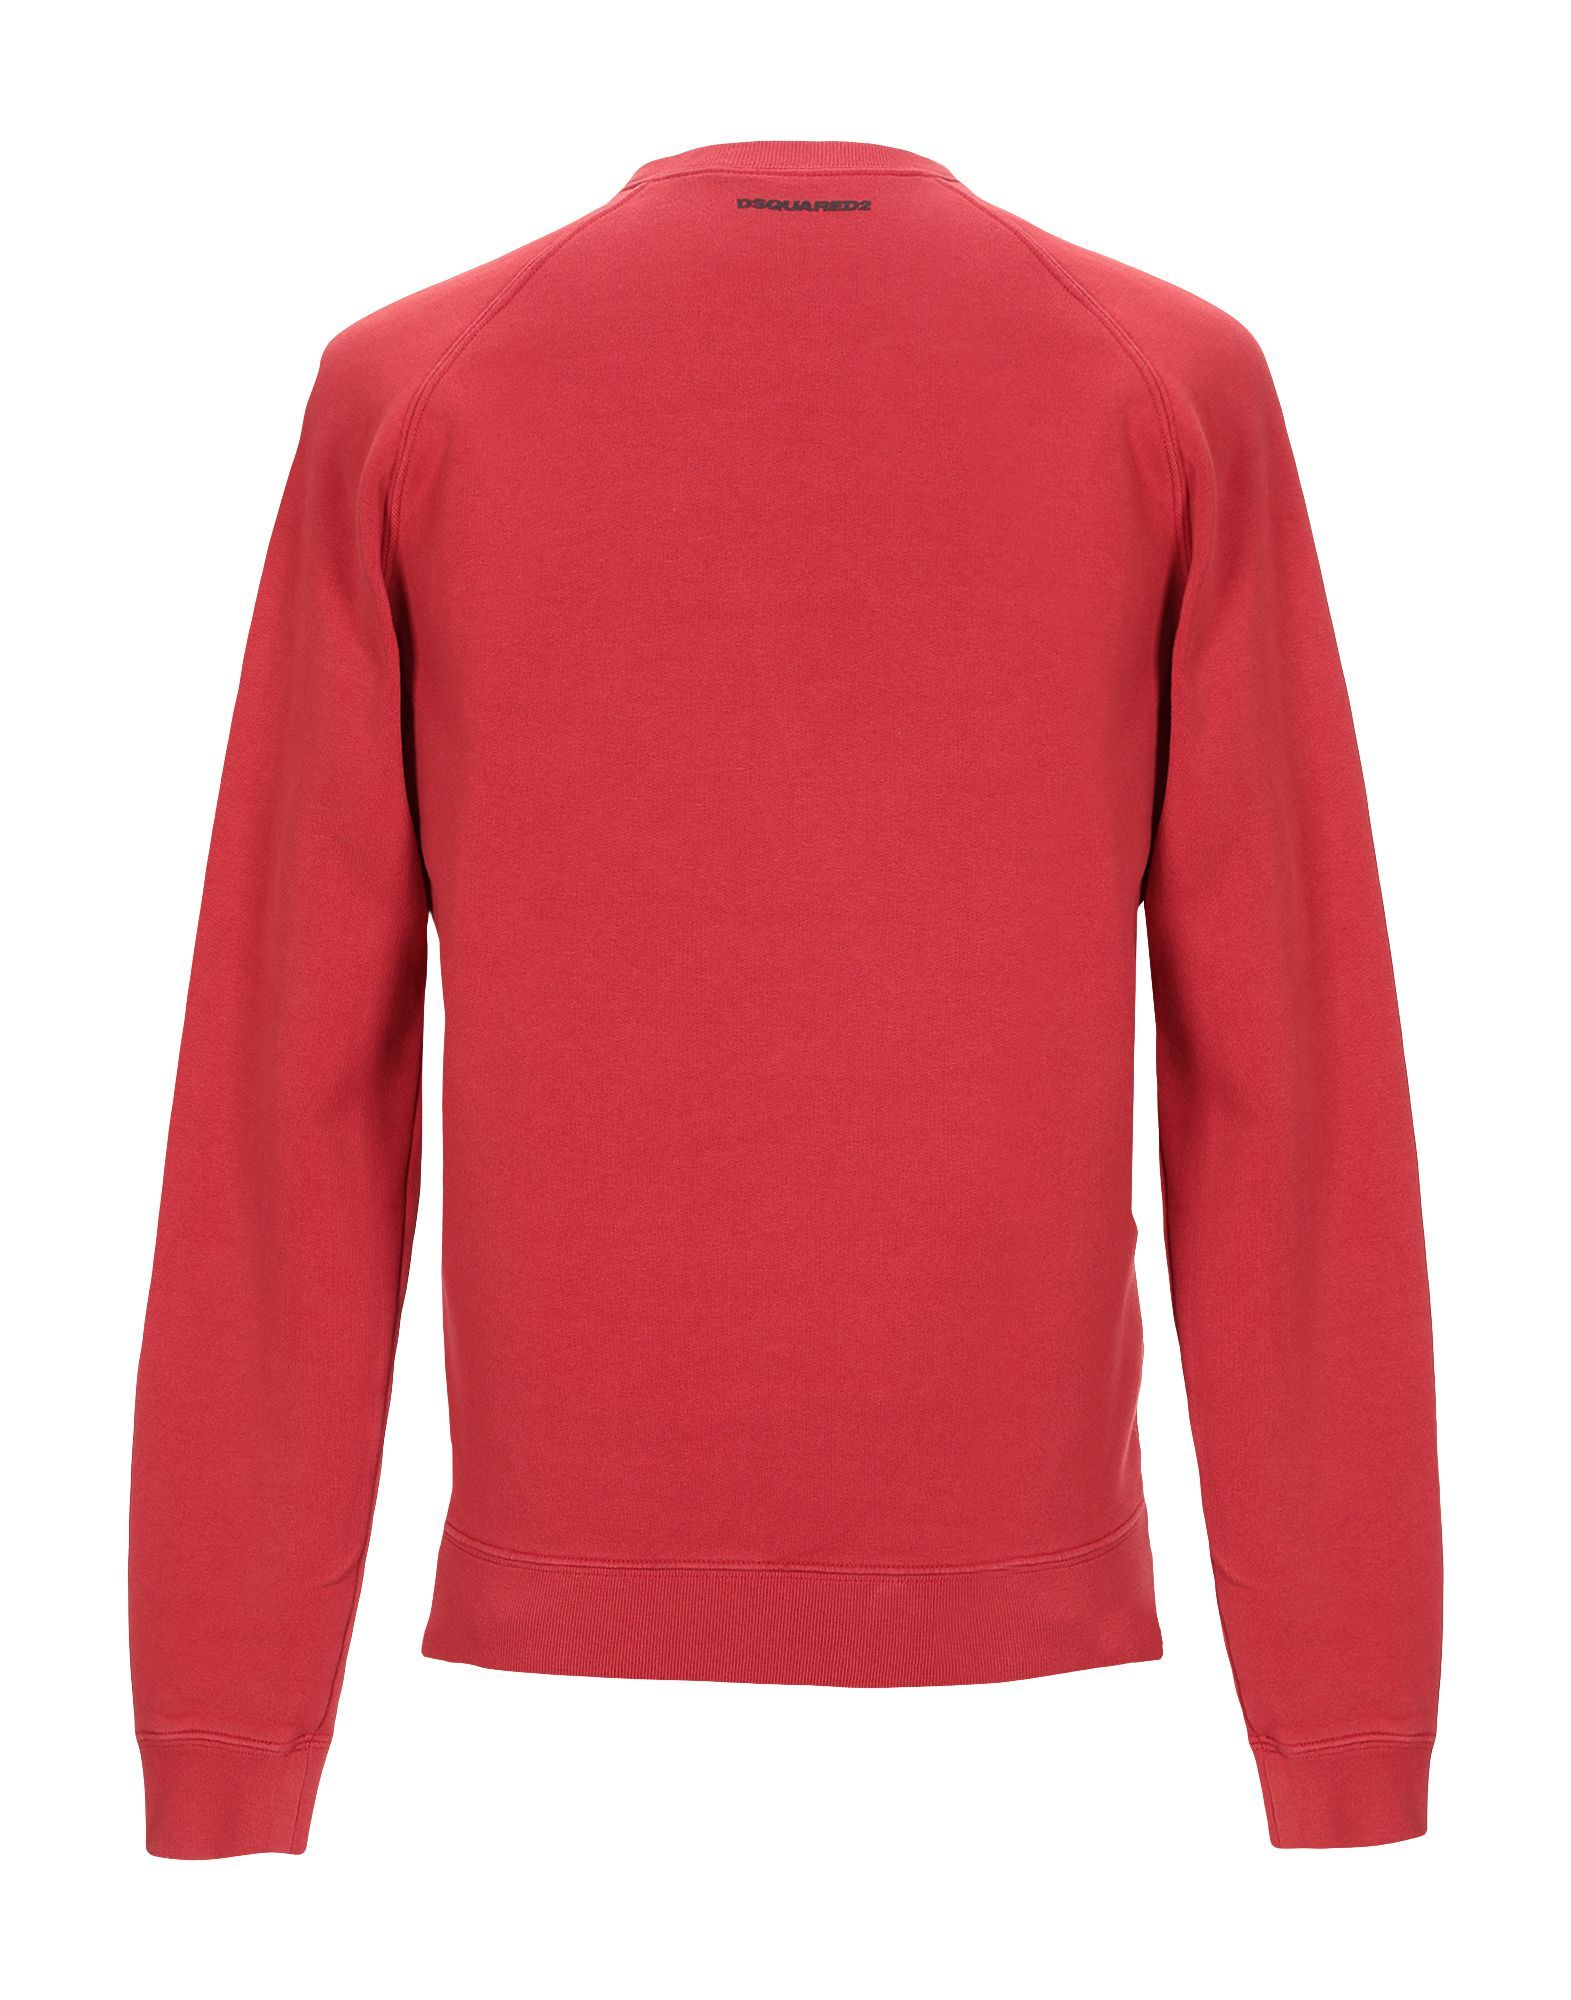 Dsquared2 Red Cotton Sweatshirt